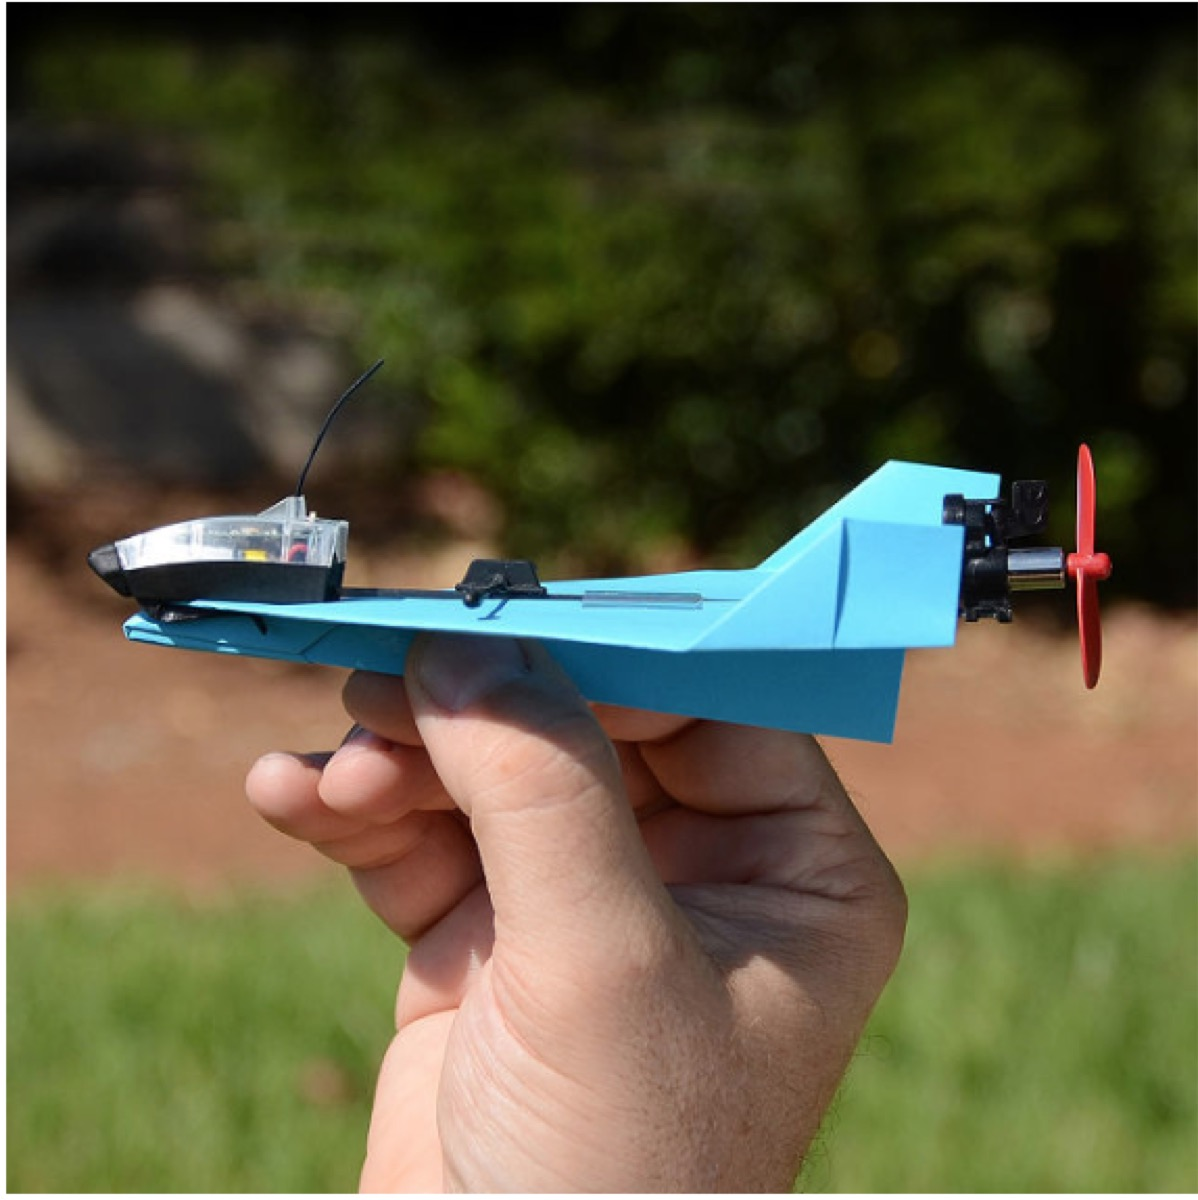 white hand holding blue smartphone controlled paper airplane